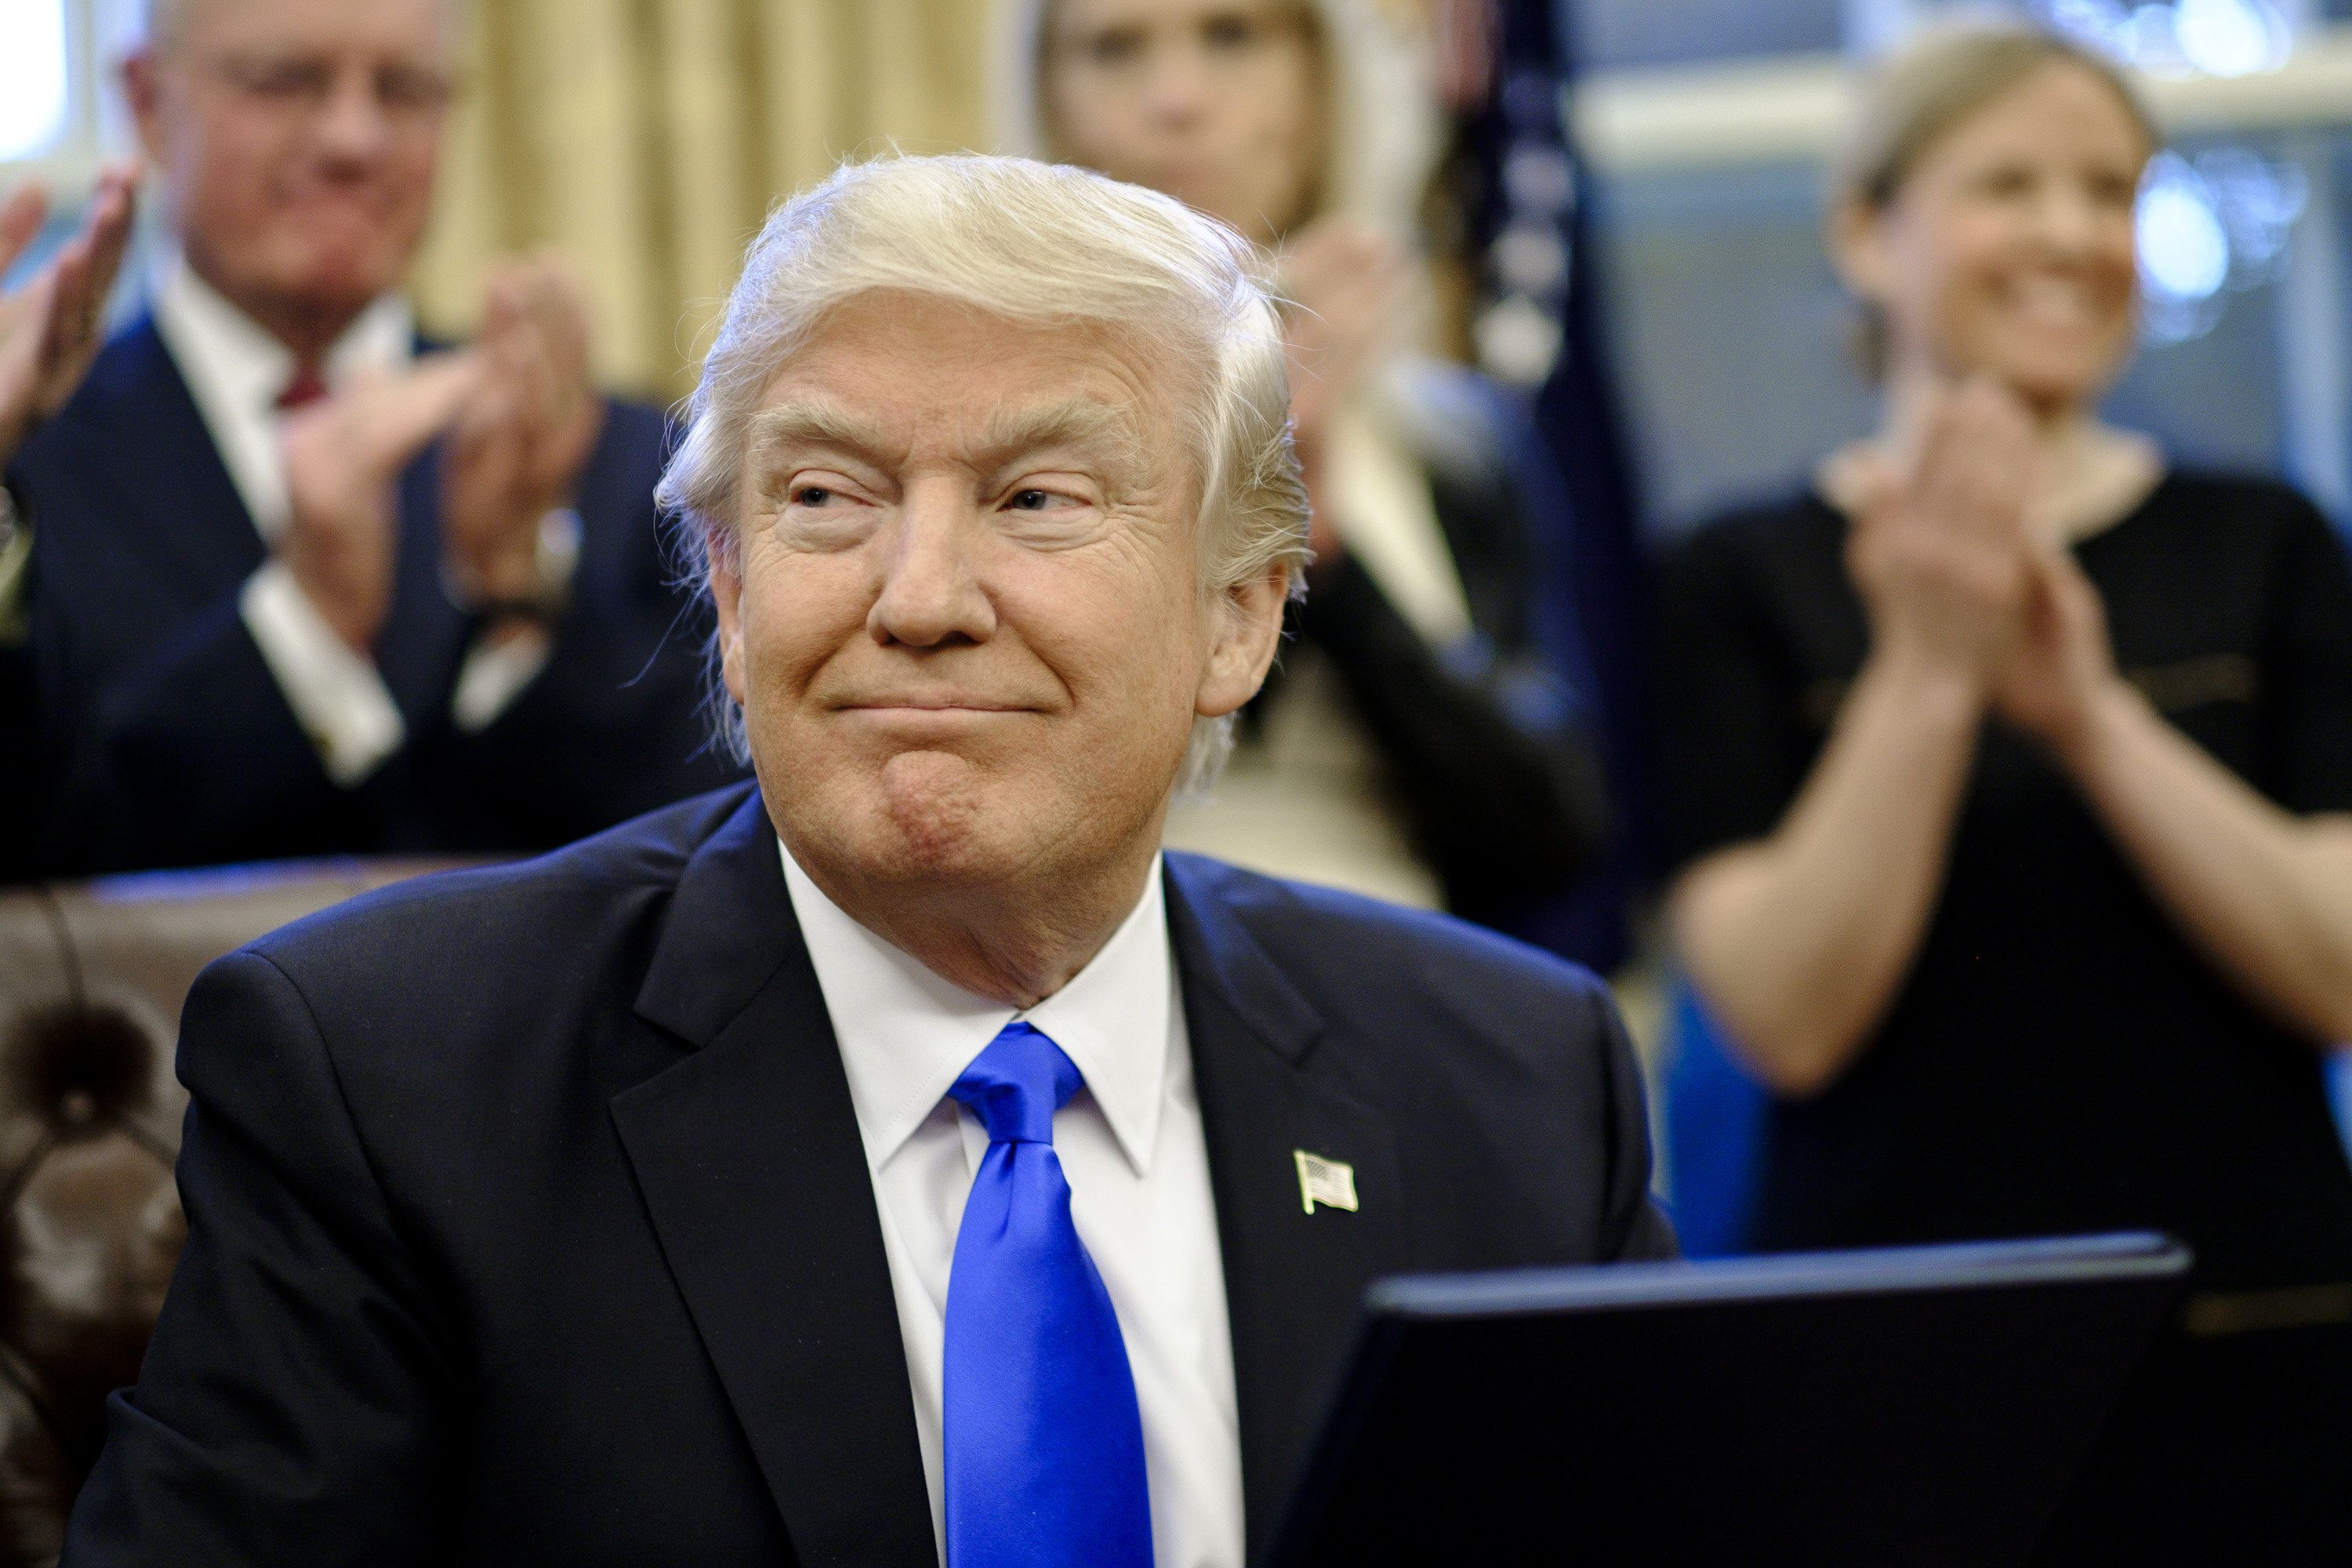 U.S. President Donald Trump smiles after signing executive orders related to a lobbying ban in the Oval Office of the White House in Washington, D.C., U.S., on Saturday, Jan. 28, 2017. Trump moved to reorganize his National Security Council, implement a lobbying ban for political appointees once they exit his administration, and order the Pentagon to create a plan to defeat the Islamic State terror organization. Photographer: Pete Marovich/Pool via Bloomberg